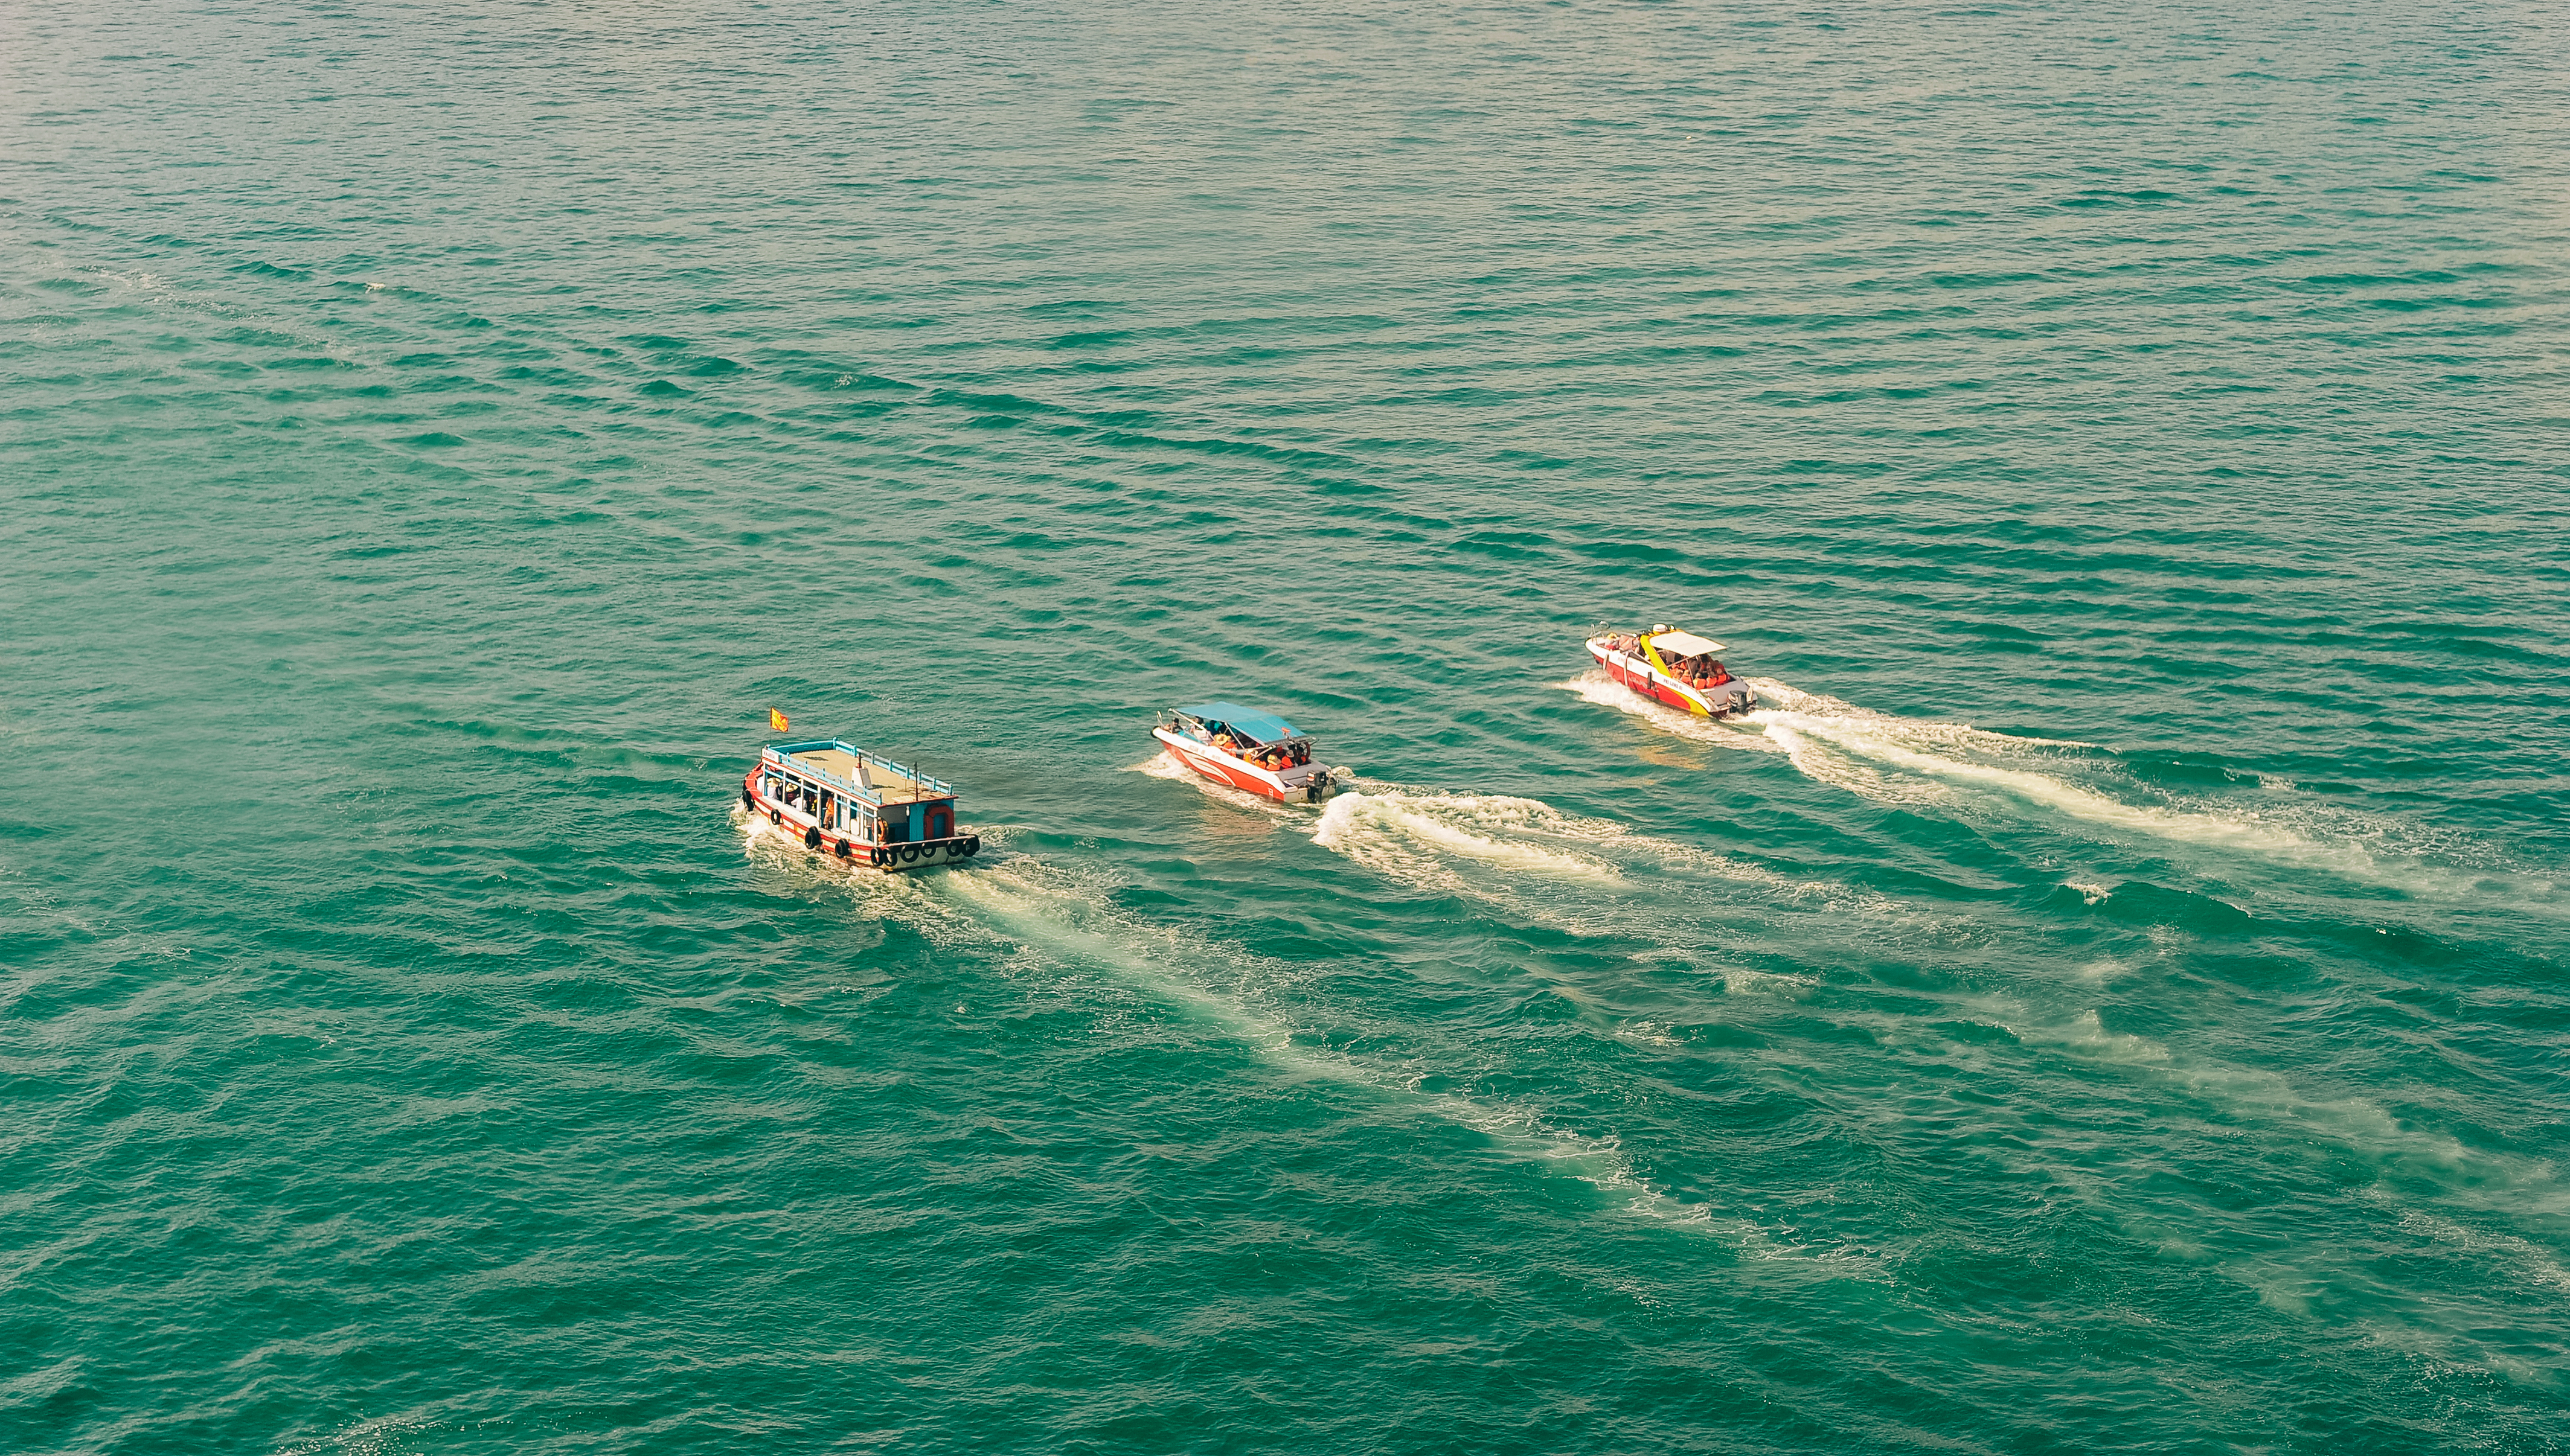 Canva - Three Speedboats Aerial Photography